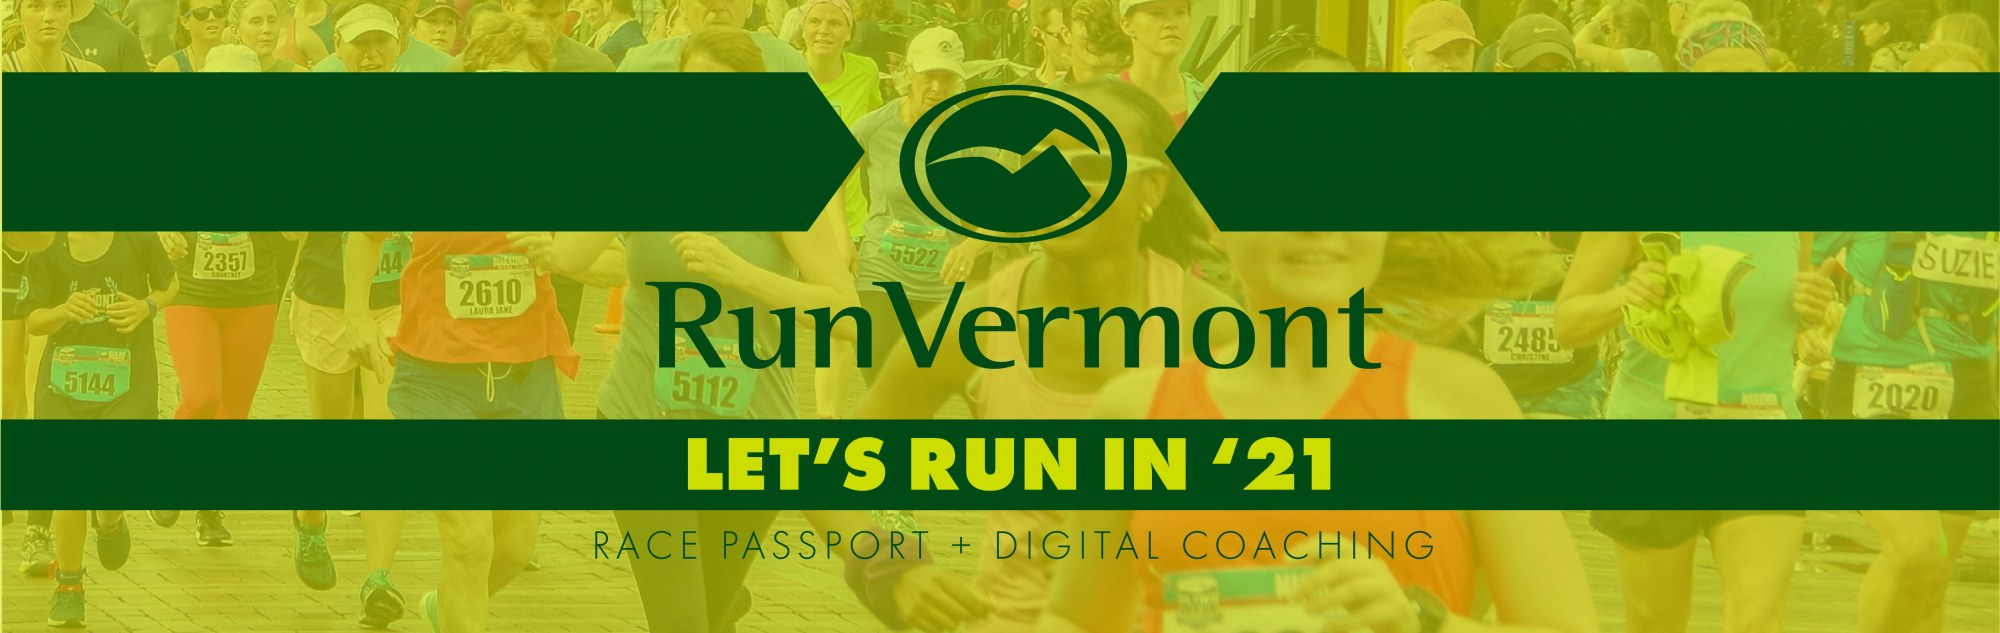 Let's Run In 2021 call out with the RunVermont logo and image of runners in the background.